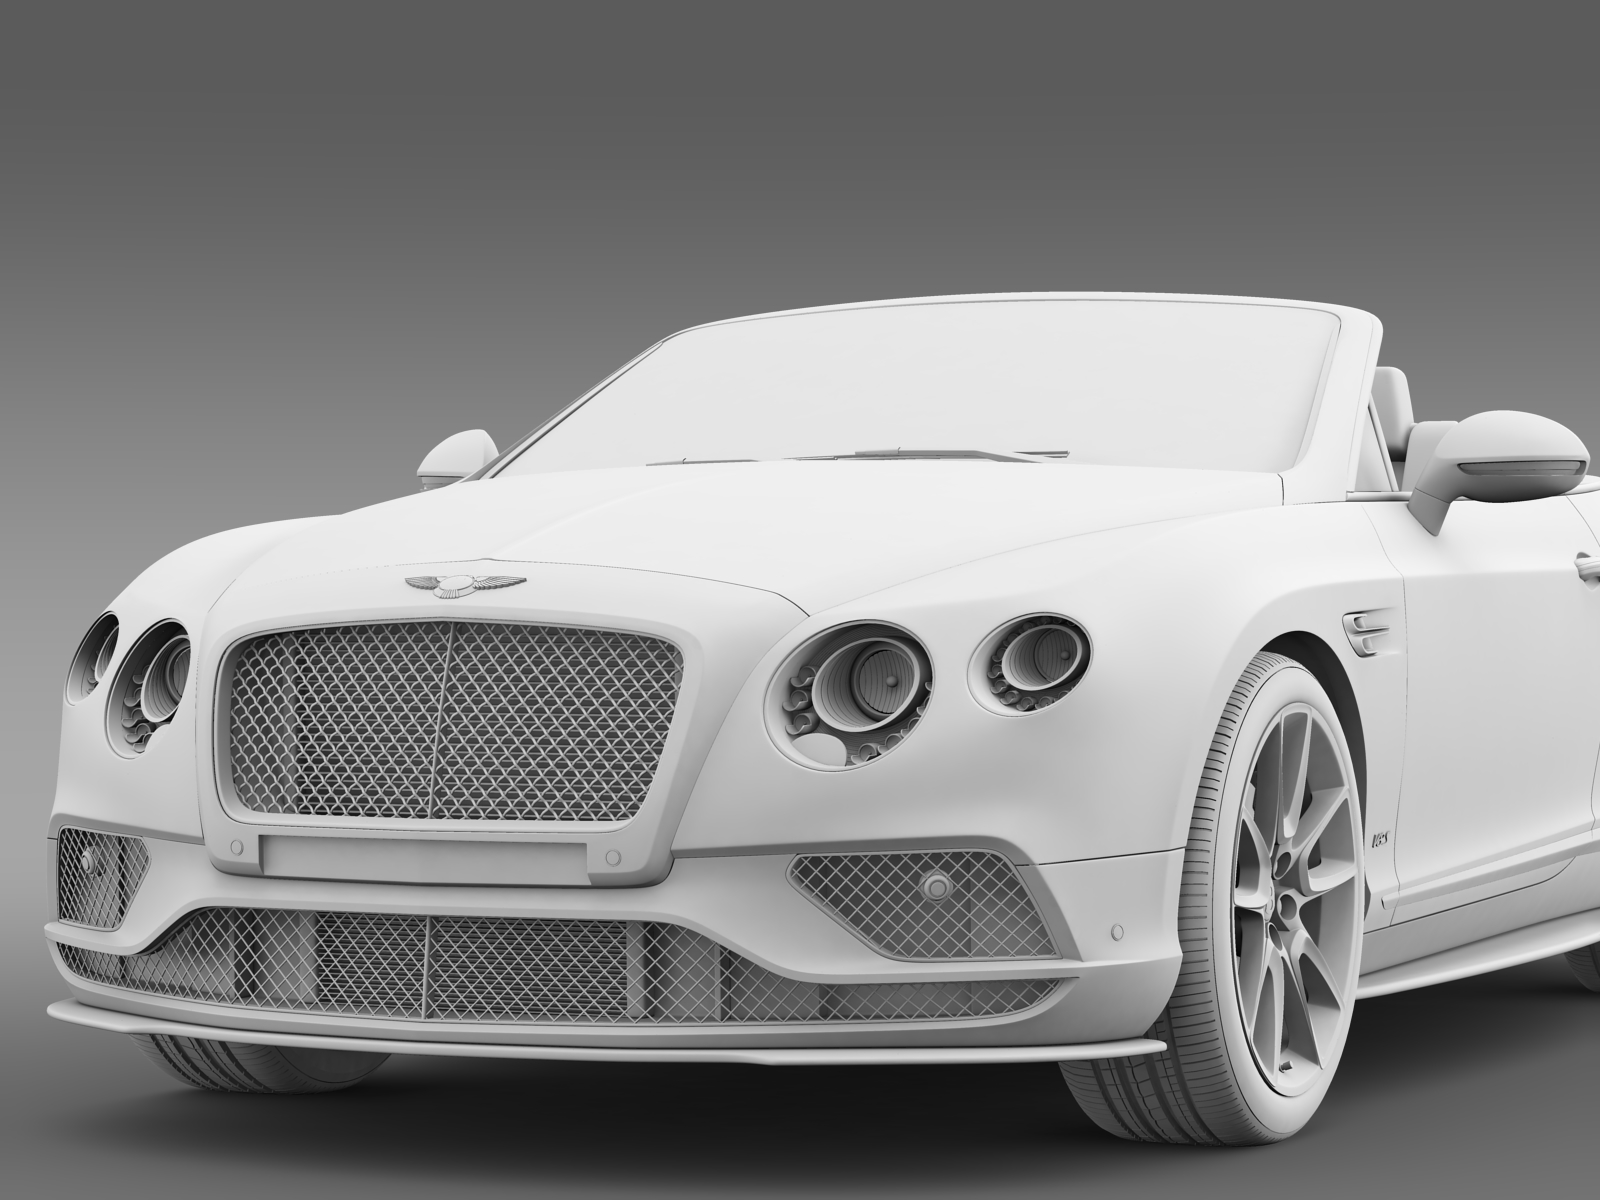 bentley continental gt v8 s convertible 2015 3d model. Black Bedroom Furniture Sets. Home Design Ideas